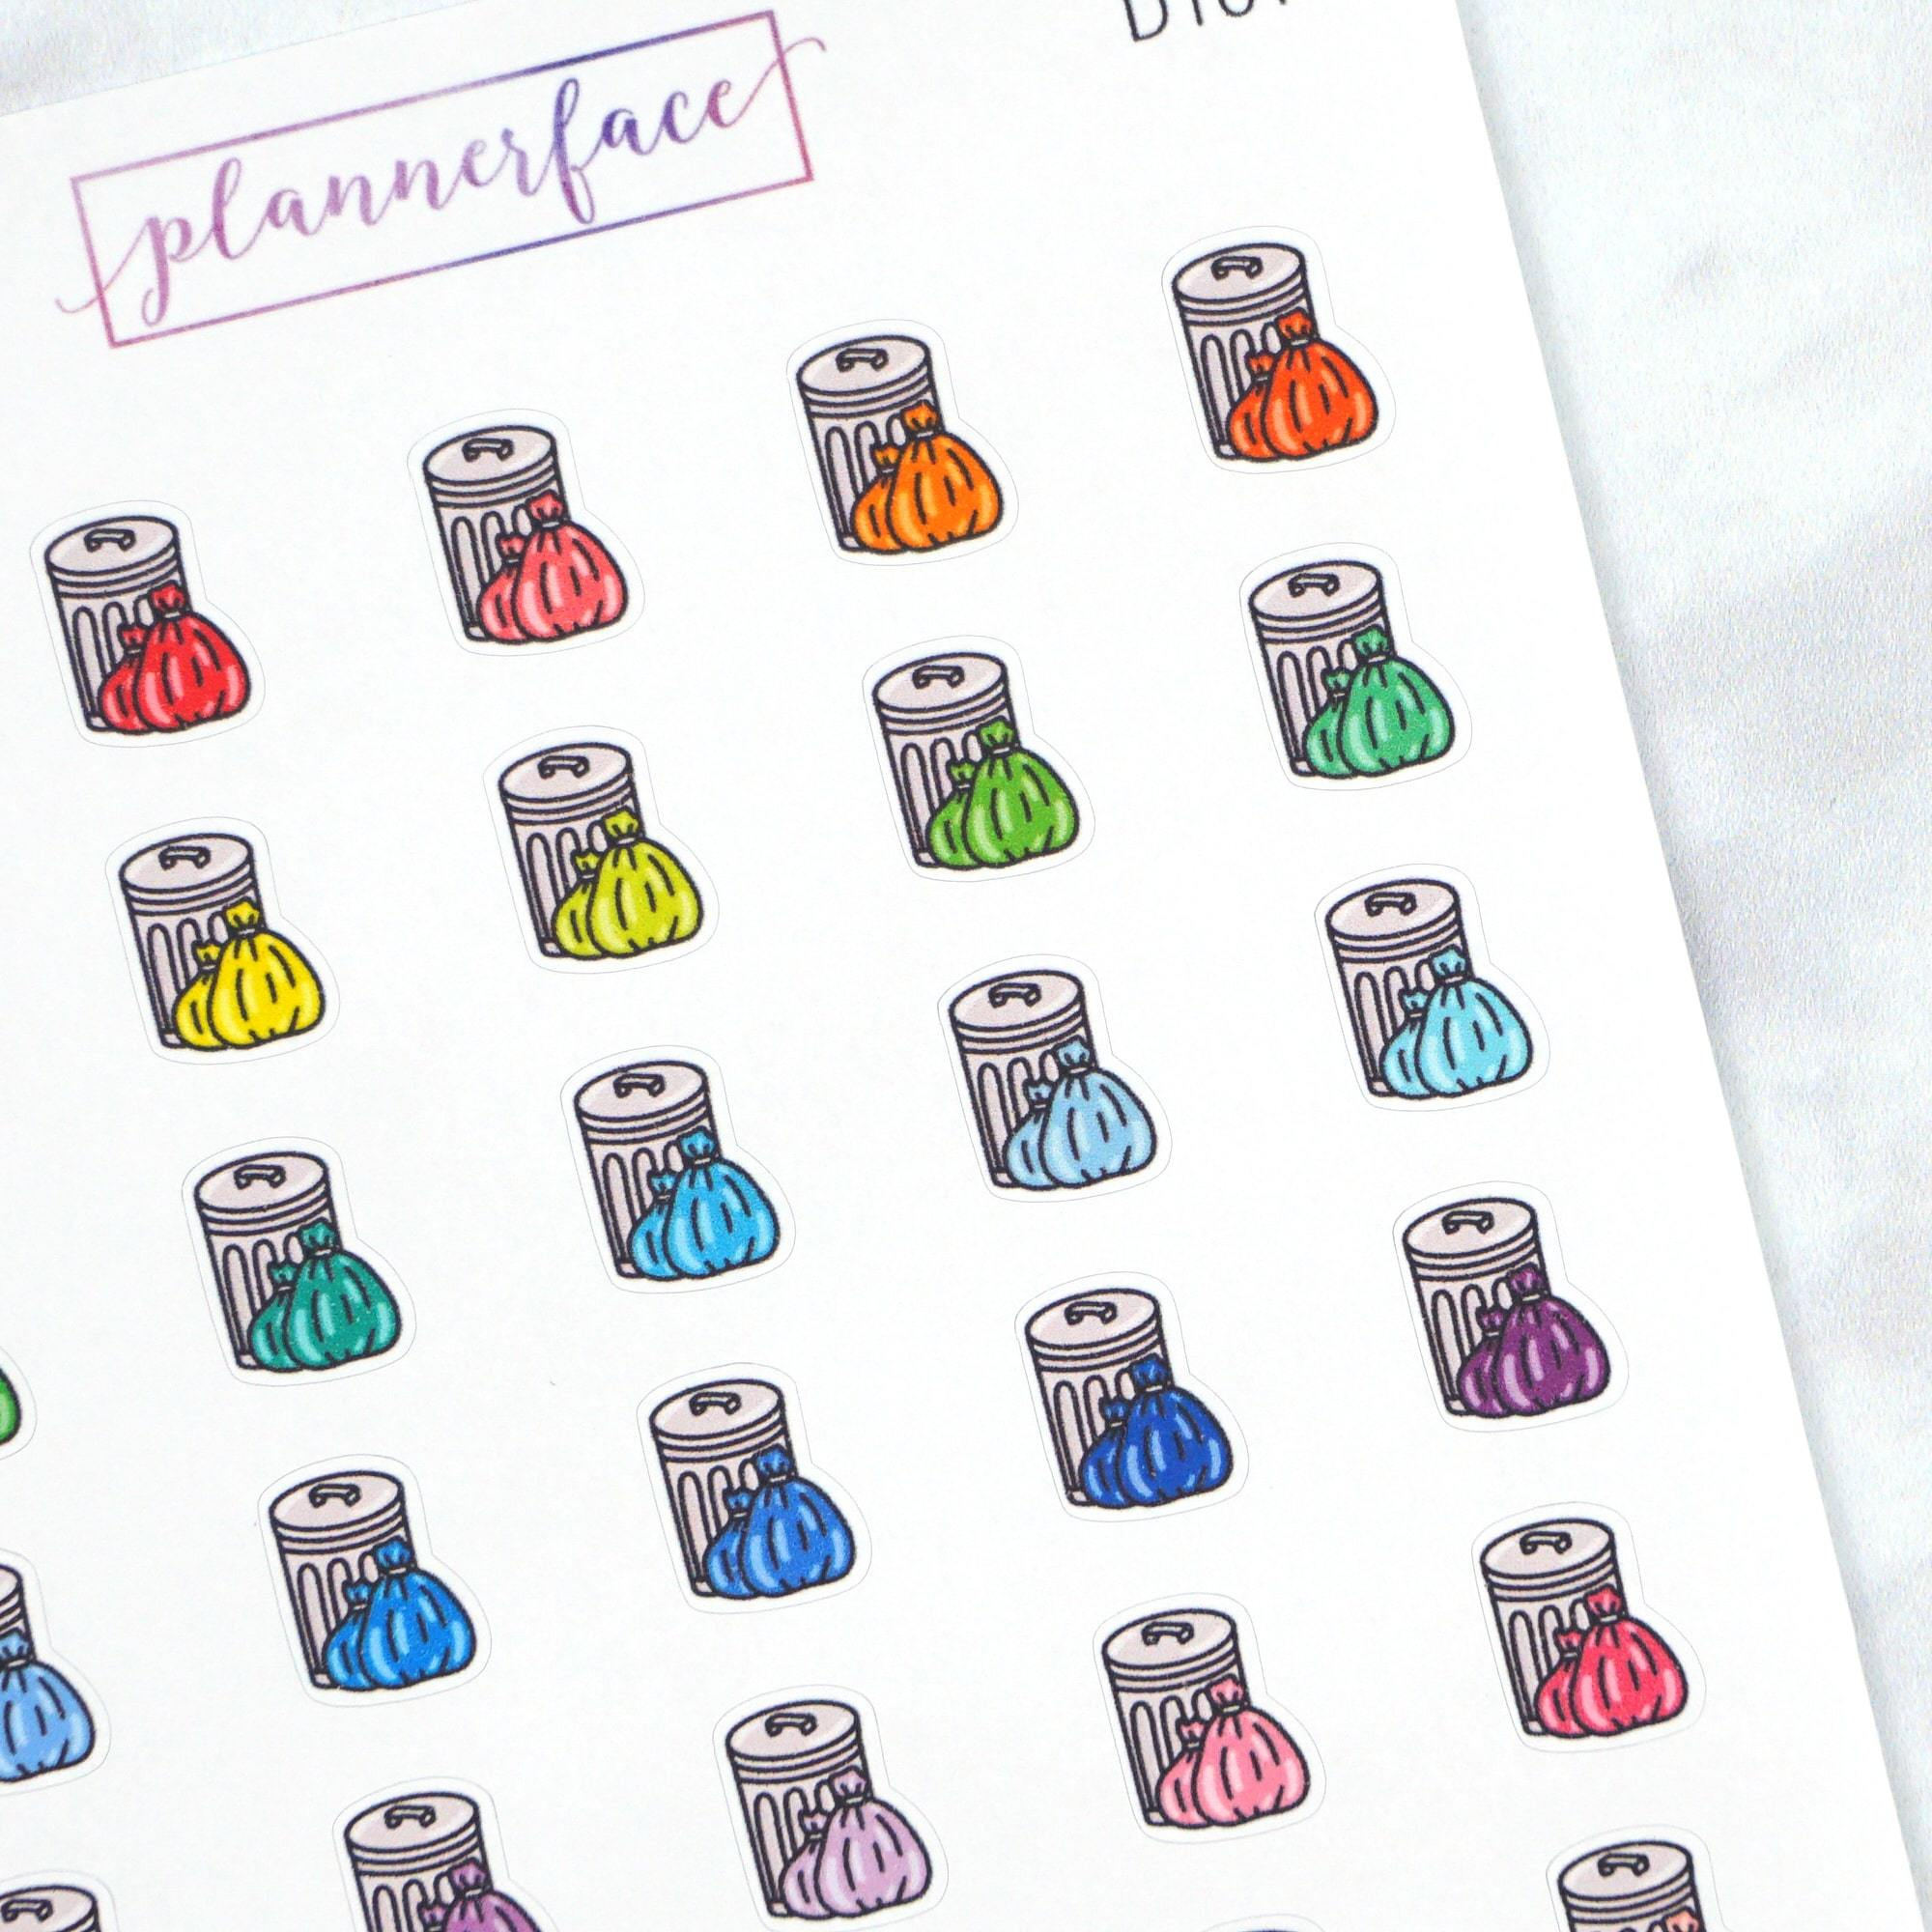 Plannerface Garbage Can Multicolour Doodles Planner Stickers